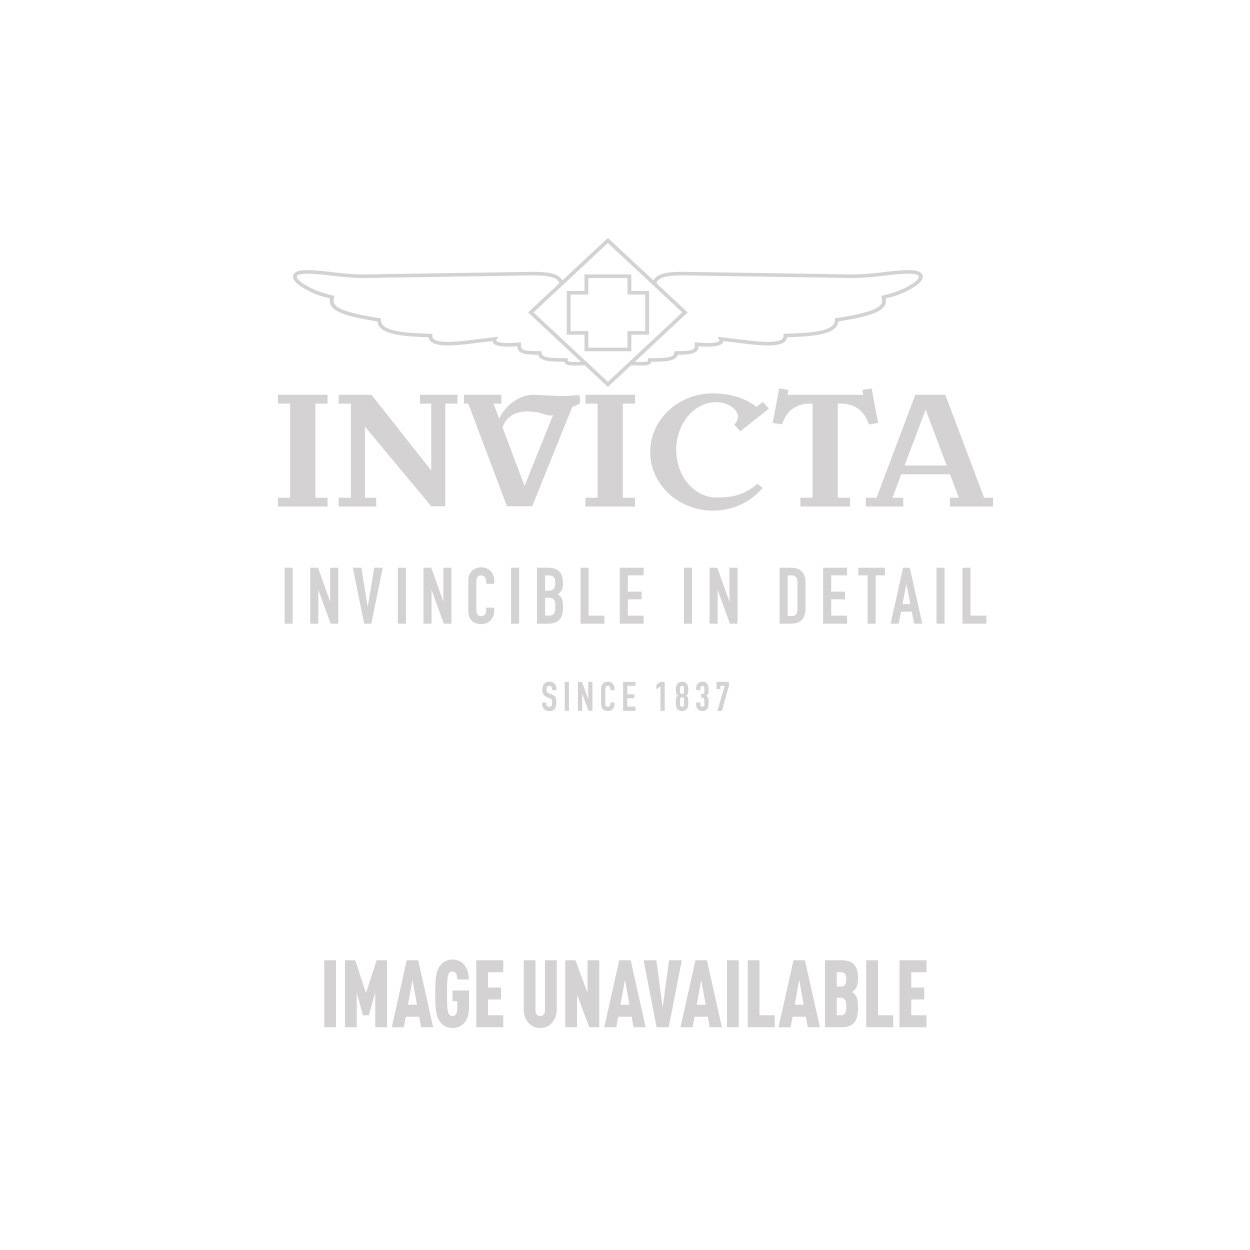 Invicta Bolt Thunderbolt Swiss Made Quartz Watch - Gold, Stainless Steel case with Black tone Silicone band - Model 21352